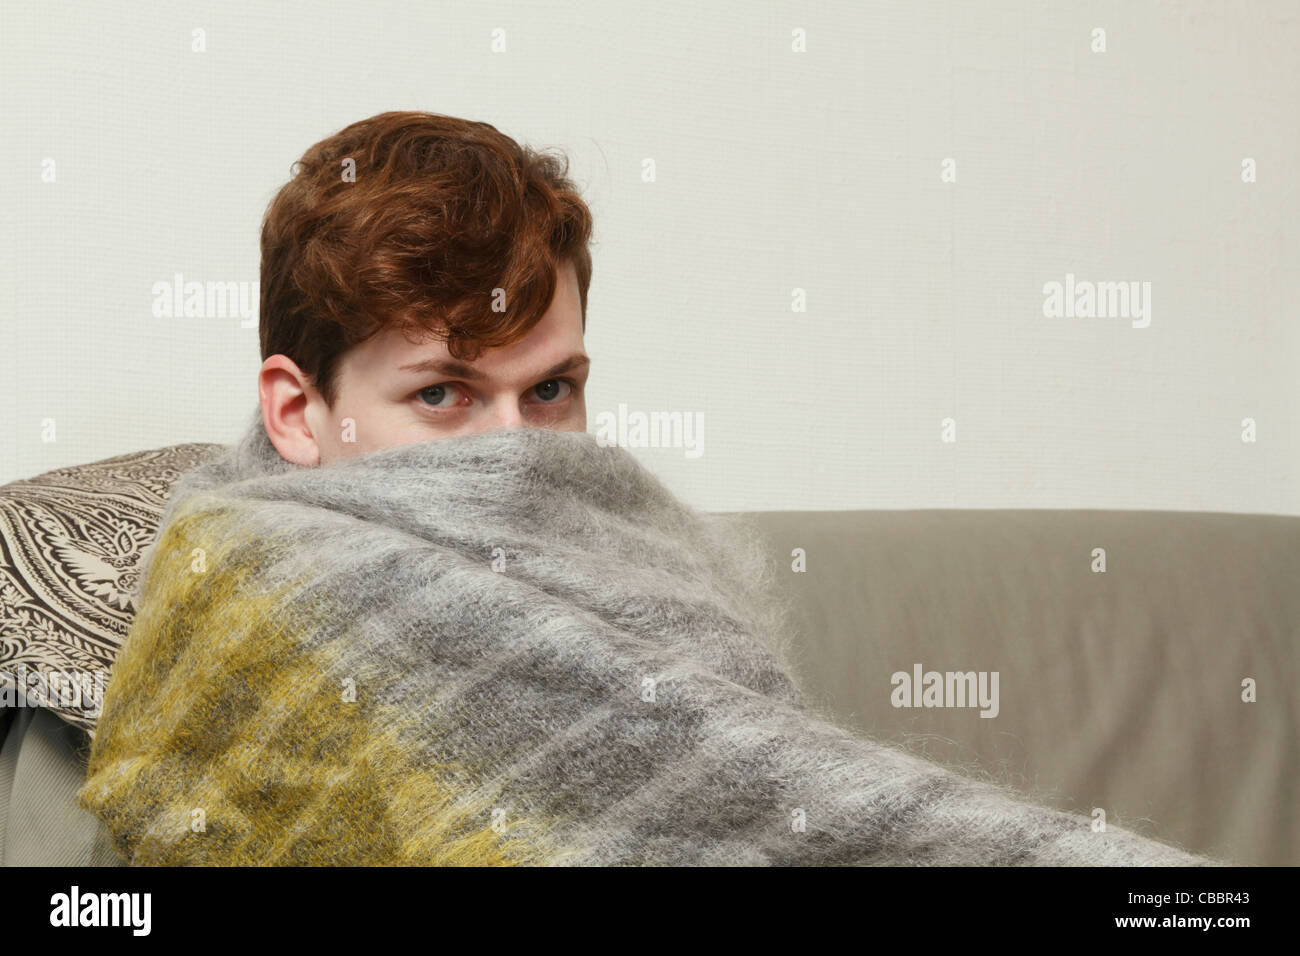 Man wrapped in blanket on couch - Stock Image